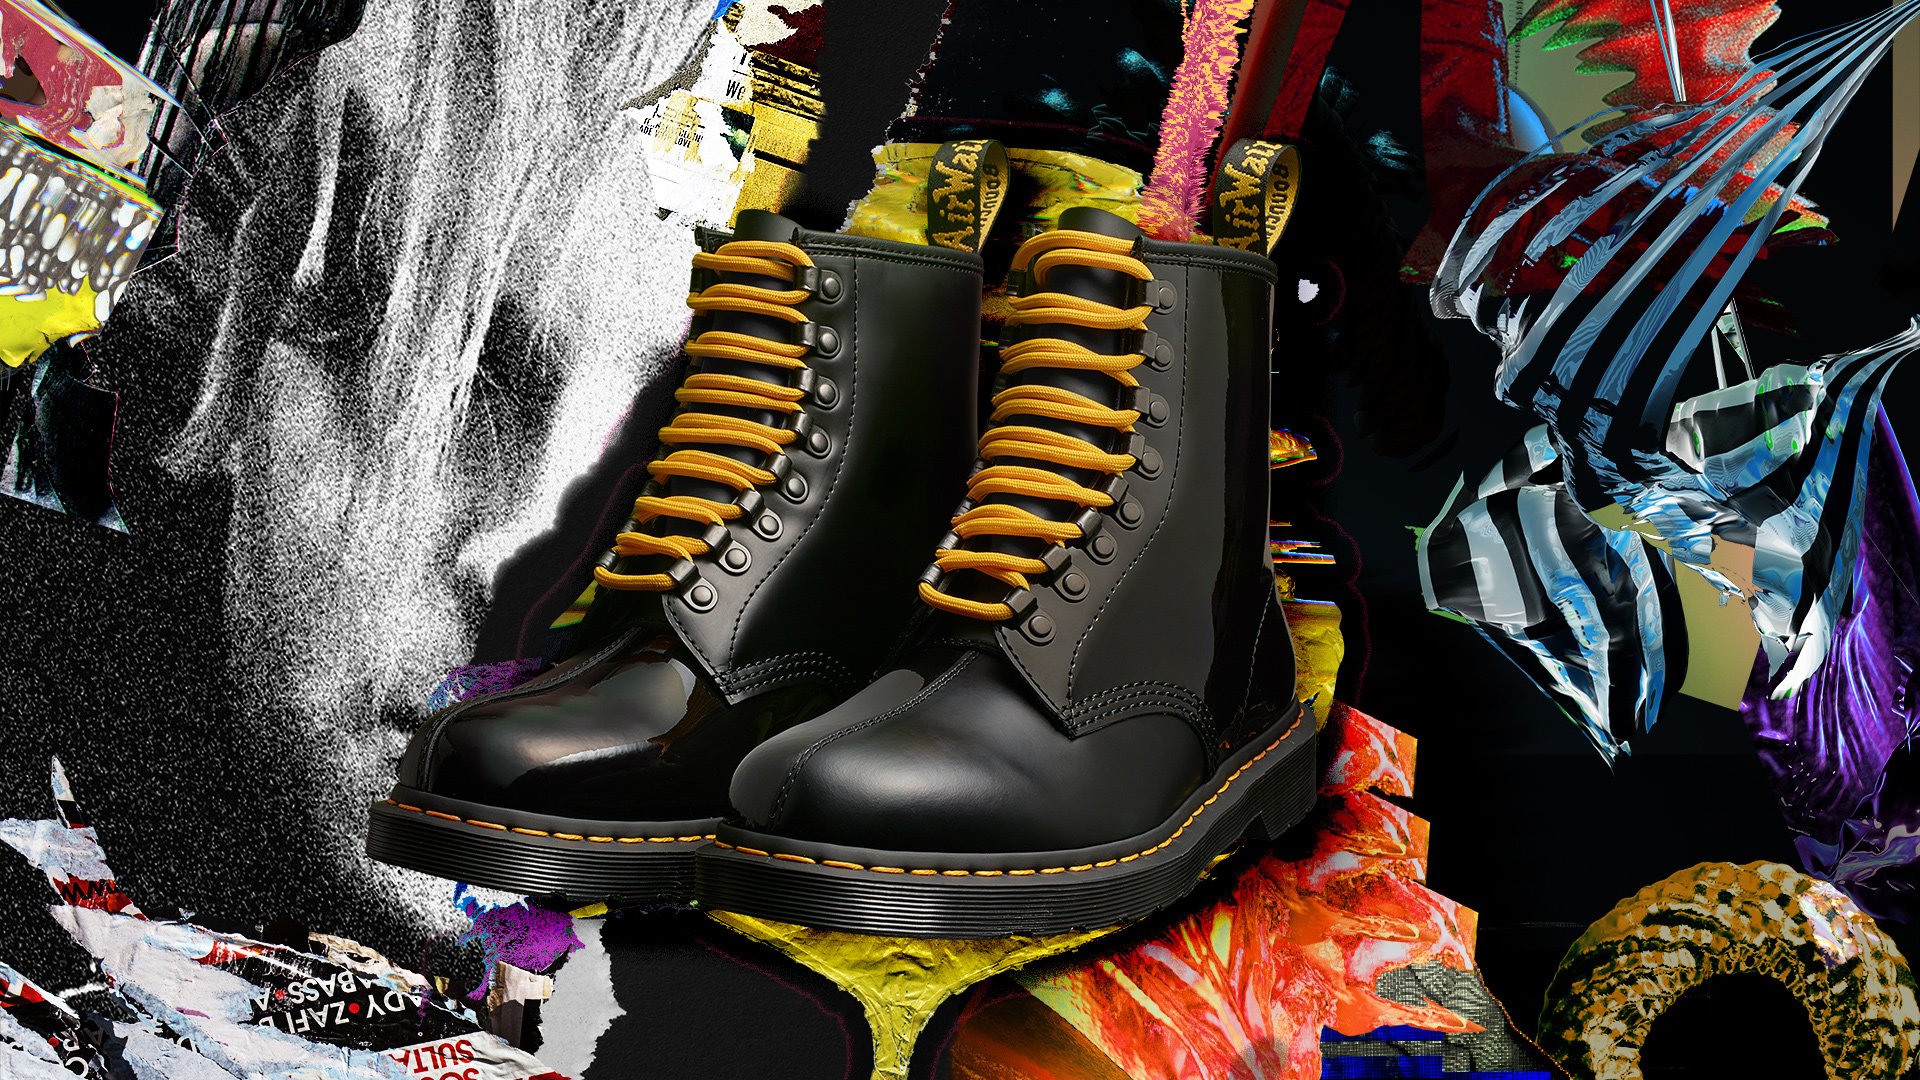 James Dawe Creates Artwork for Dr. Martens' 60th Anniversary Collaboration with Pleasures